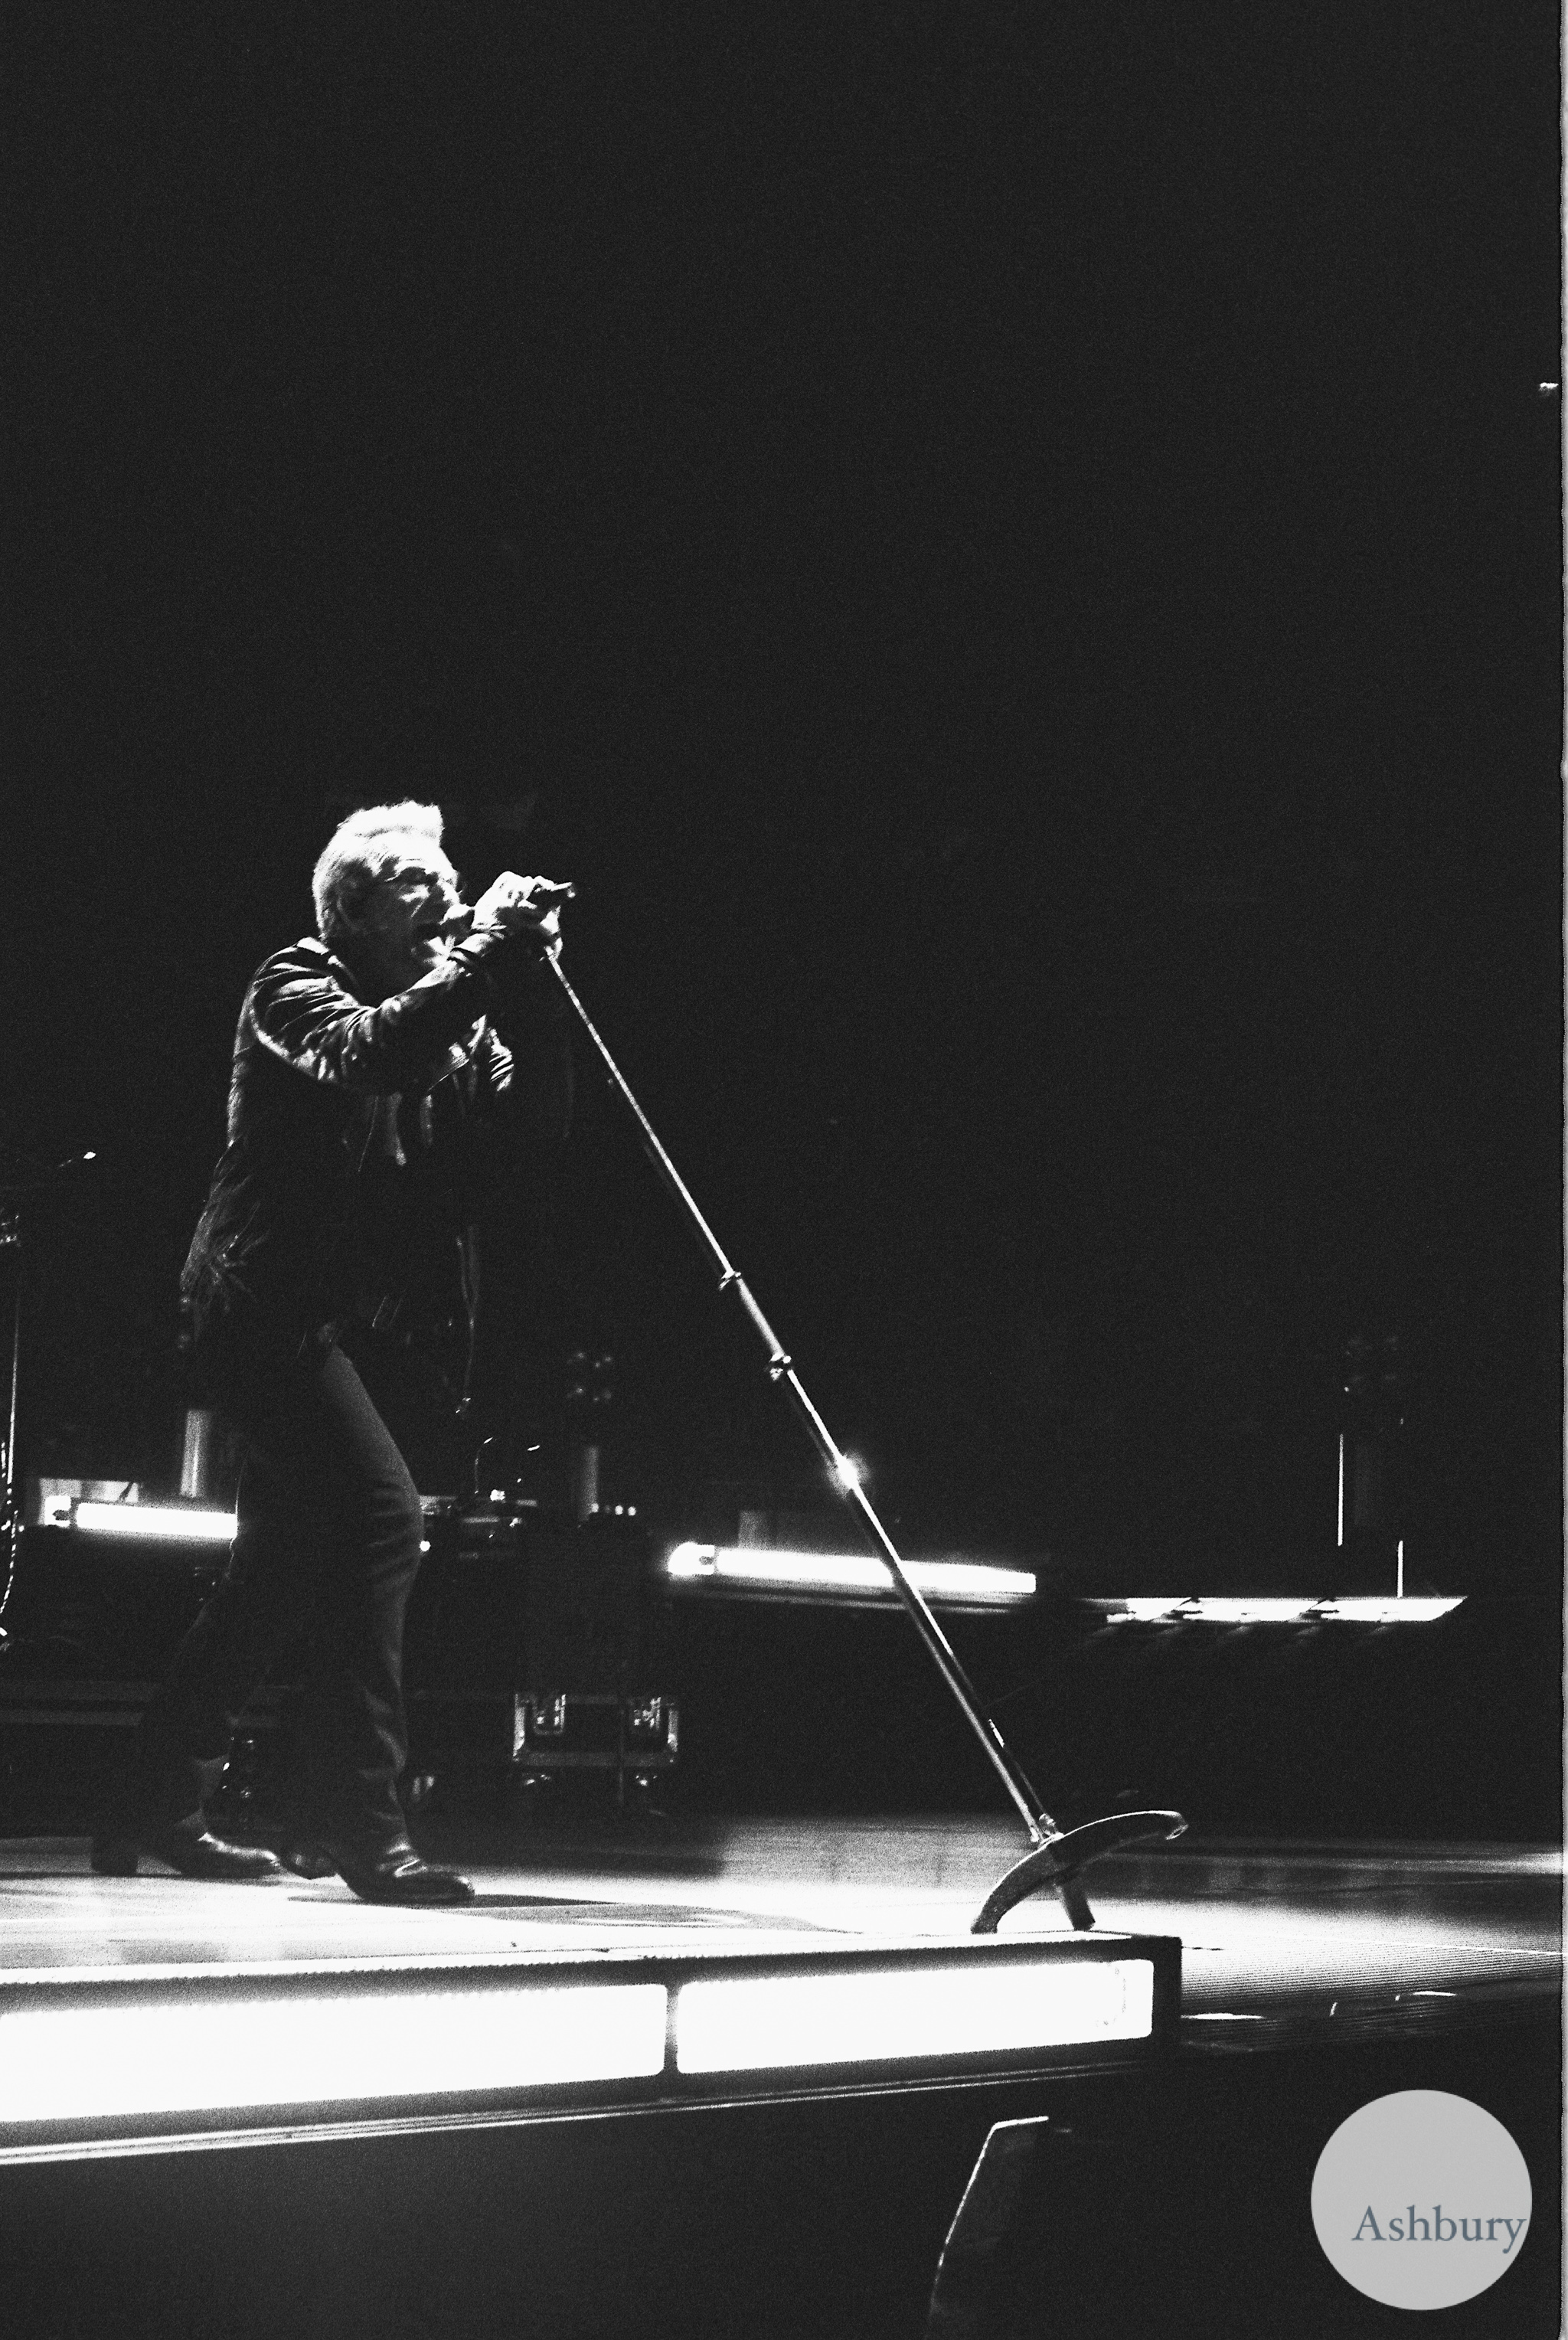 bono of U2 u2ie tour MSG 0719 kodak tri-x 400 @ 1600